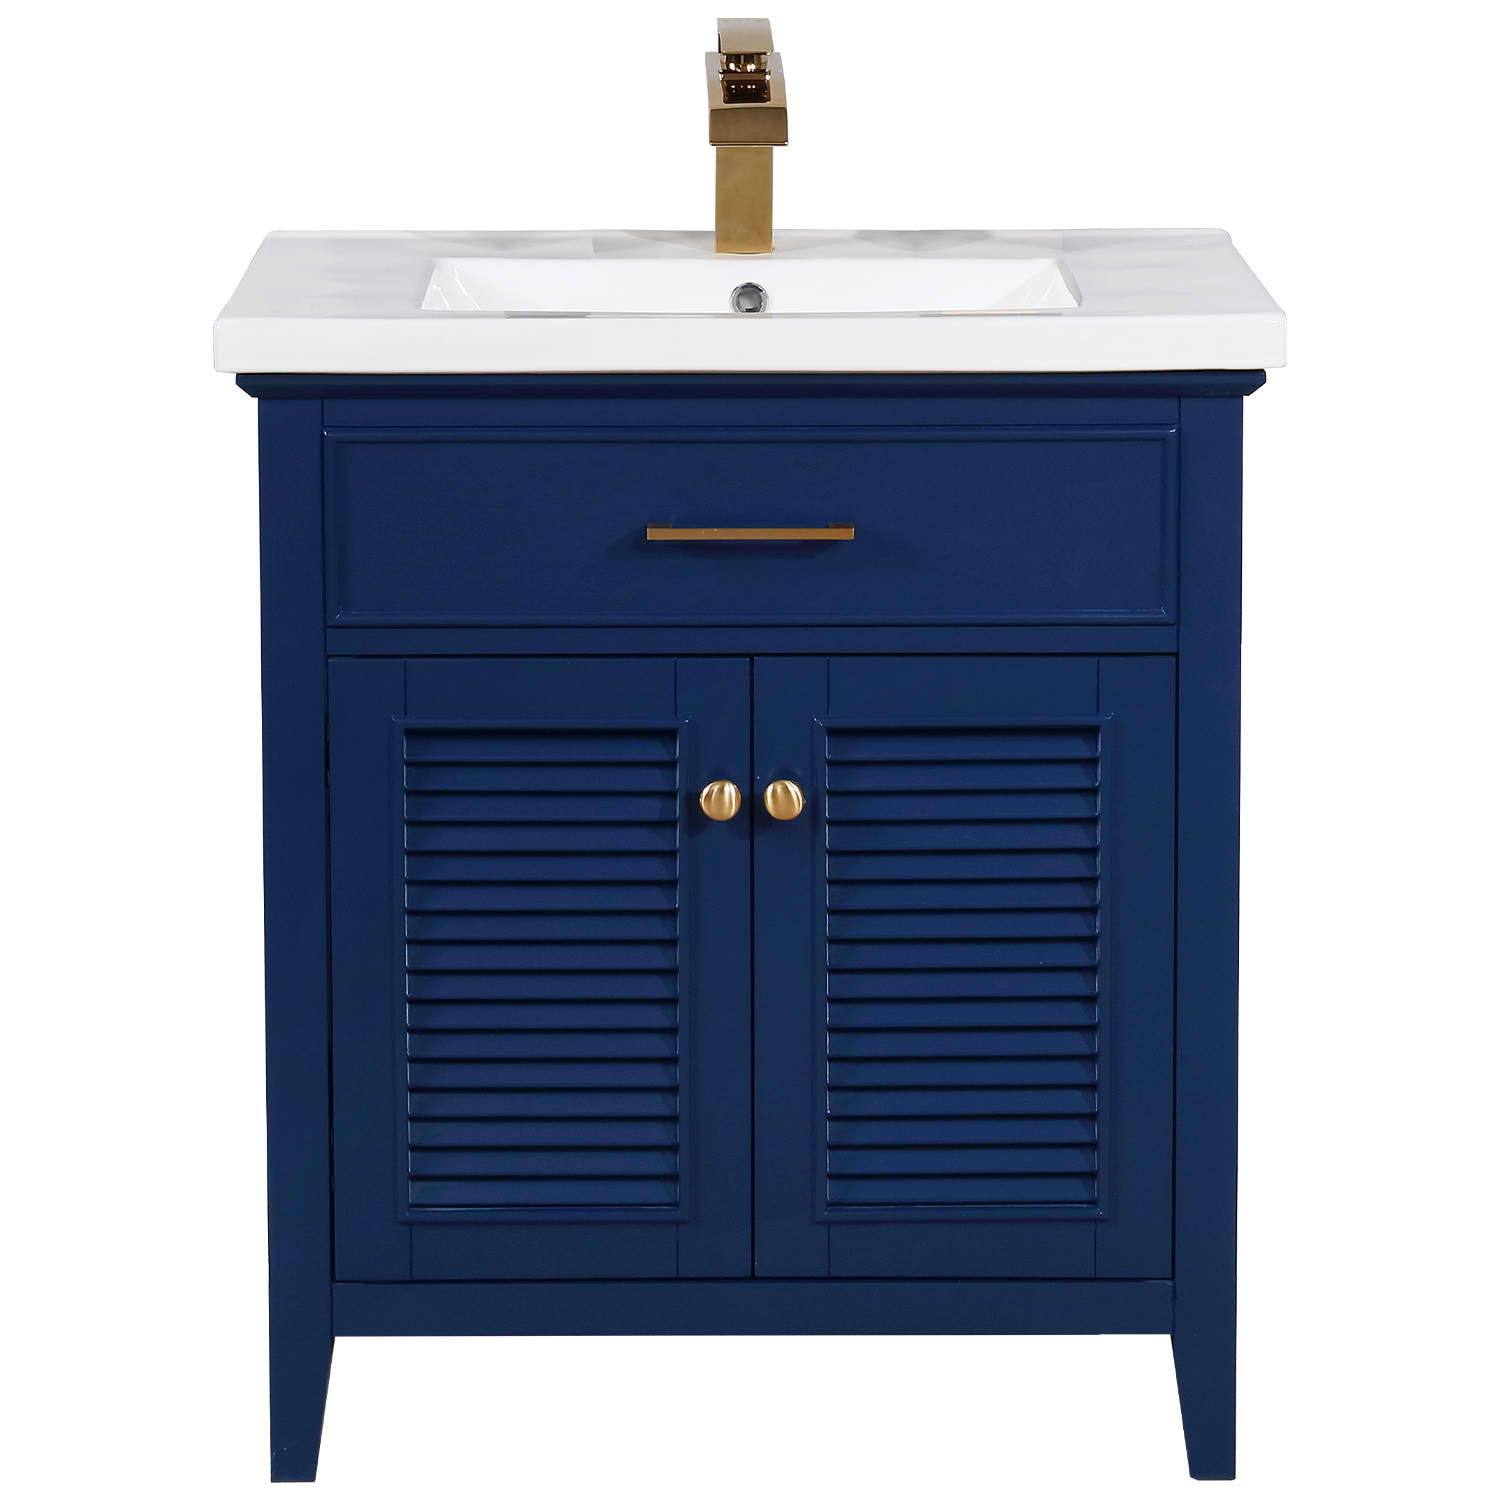 "Transitional 30"" Single Sink Bathroom Vanity with Porcelain Integrated Counterop in Blue Finish"